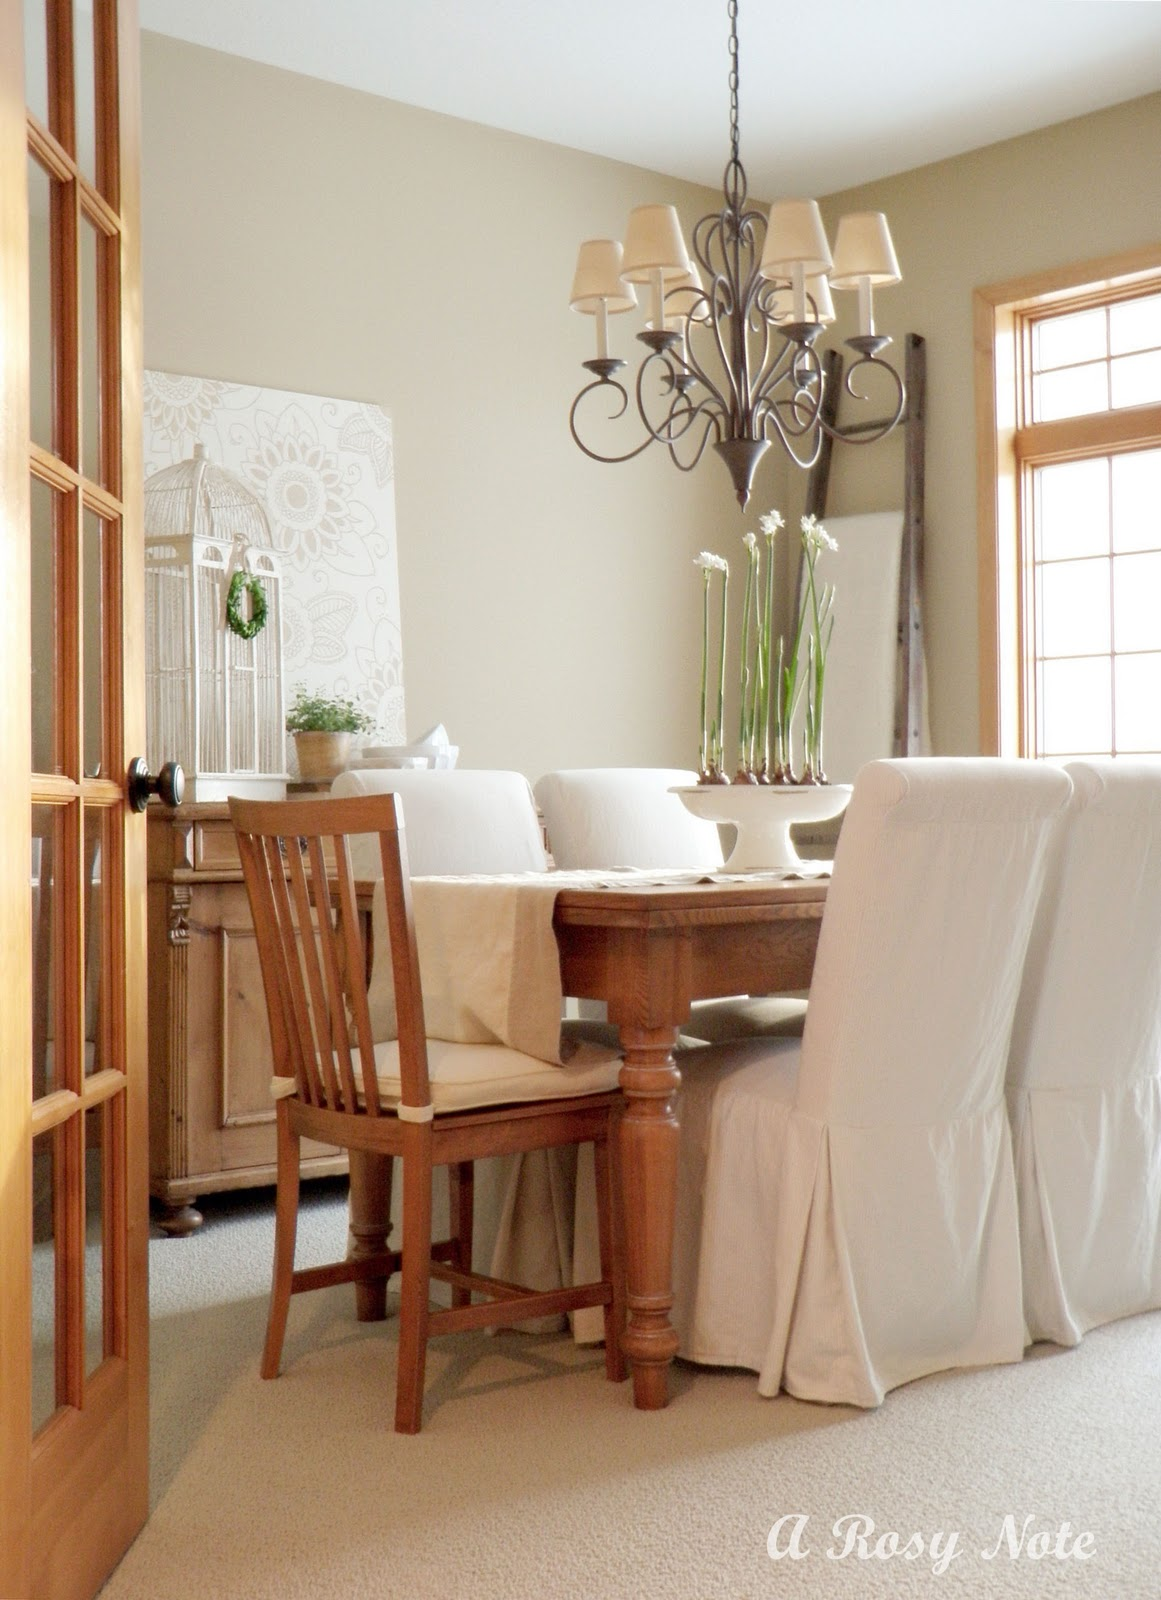 Dining room chair slipcovers and also scroll back dining chair covers and also cream dining chair covers and also dining chair seat protectors